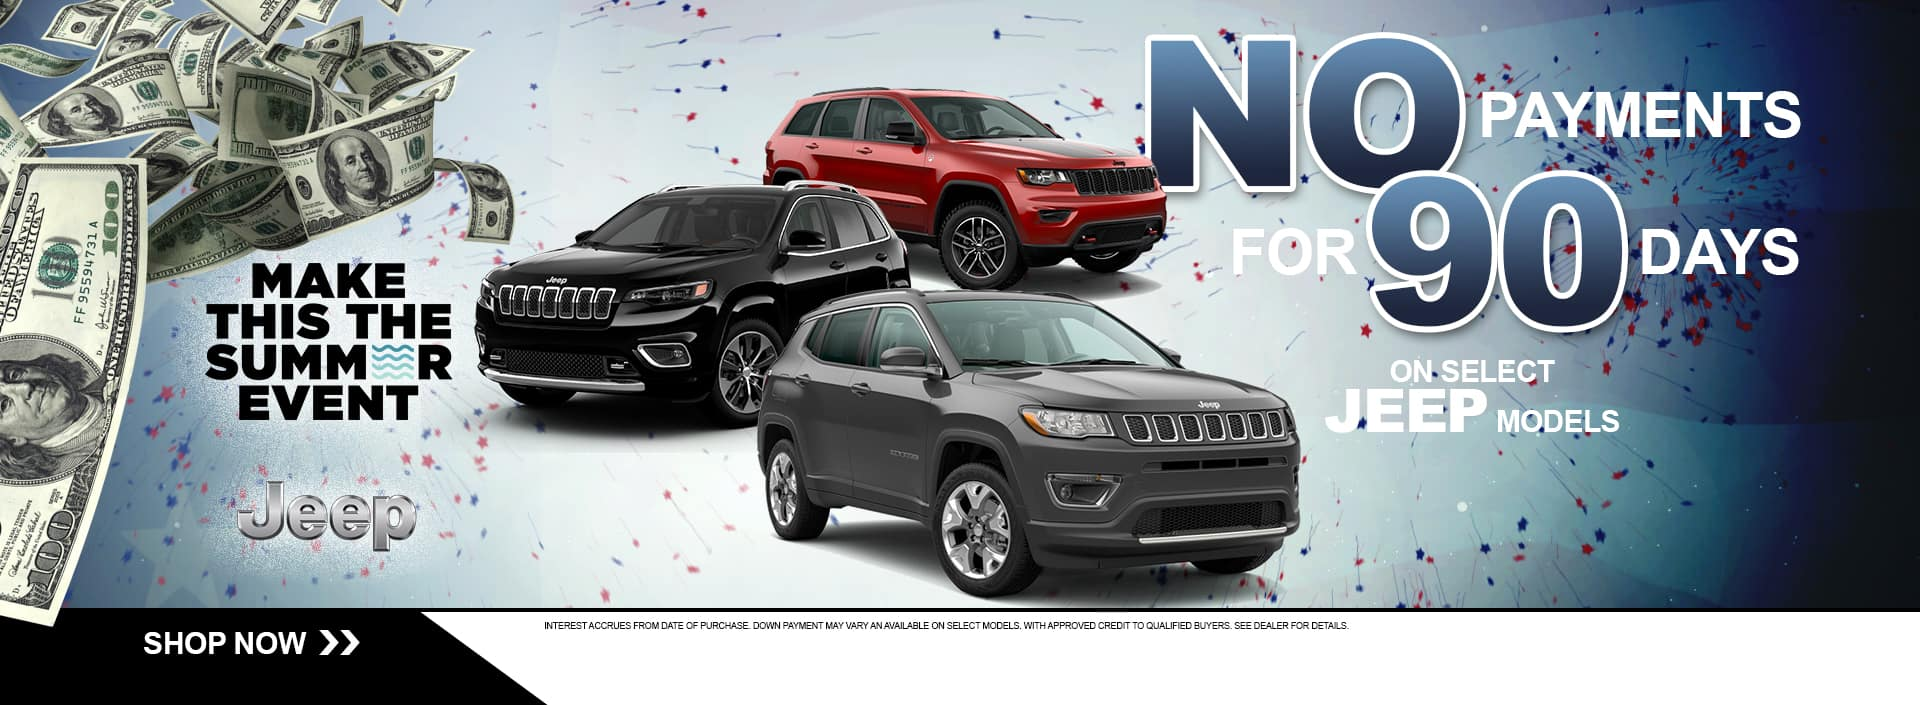 MAKE NO PAYMENTS FOR 90 DAYS ON SELECT JEEP BRANDS